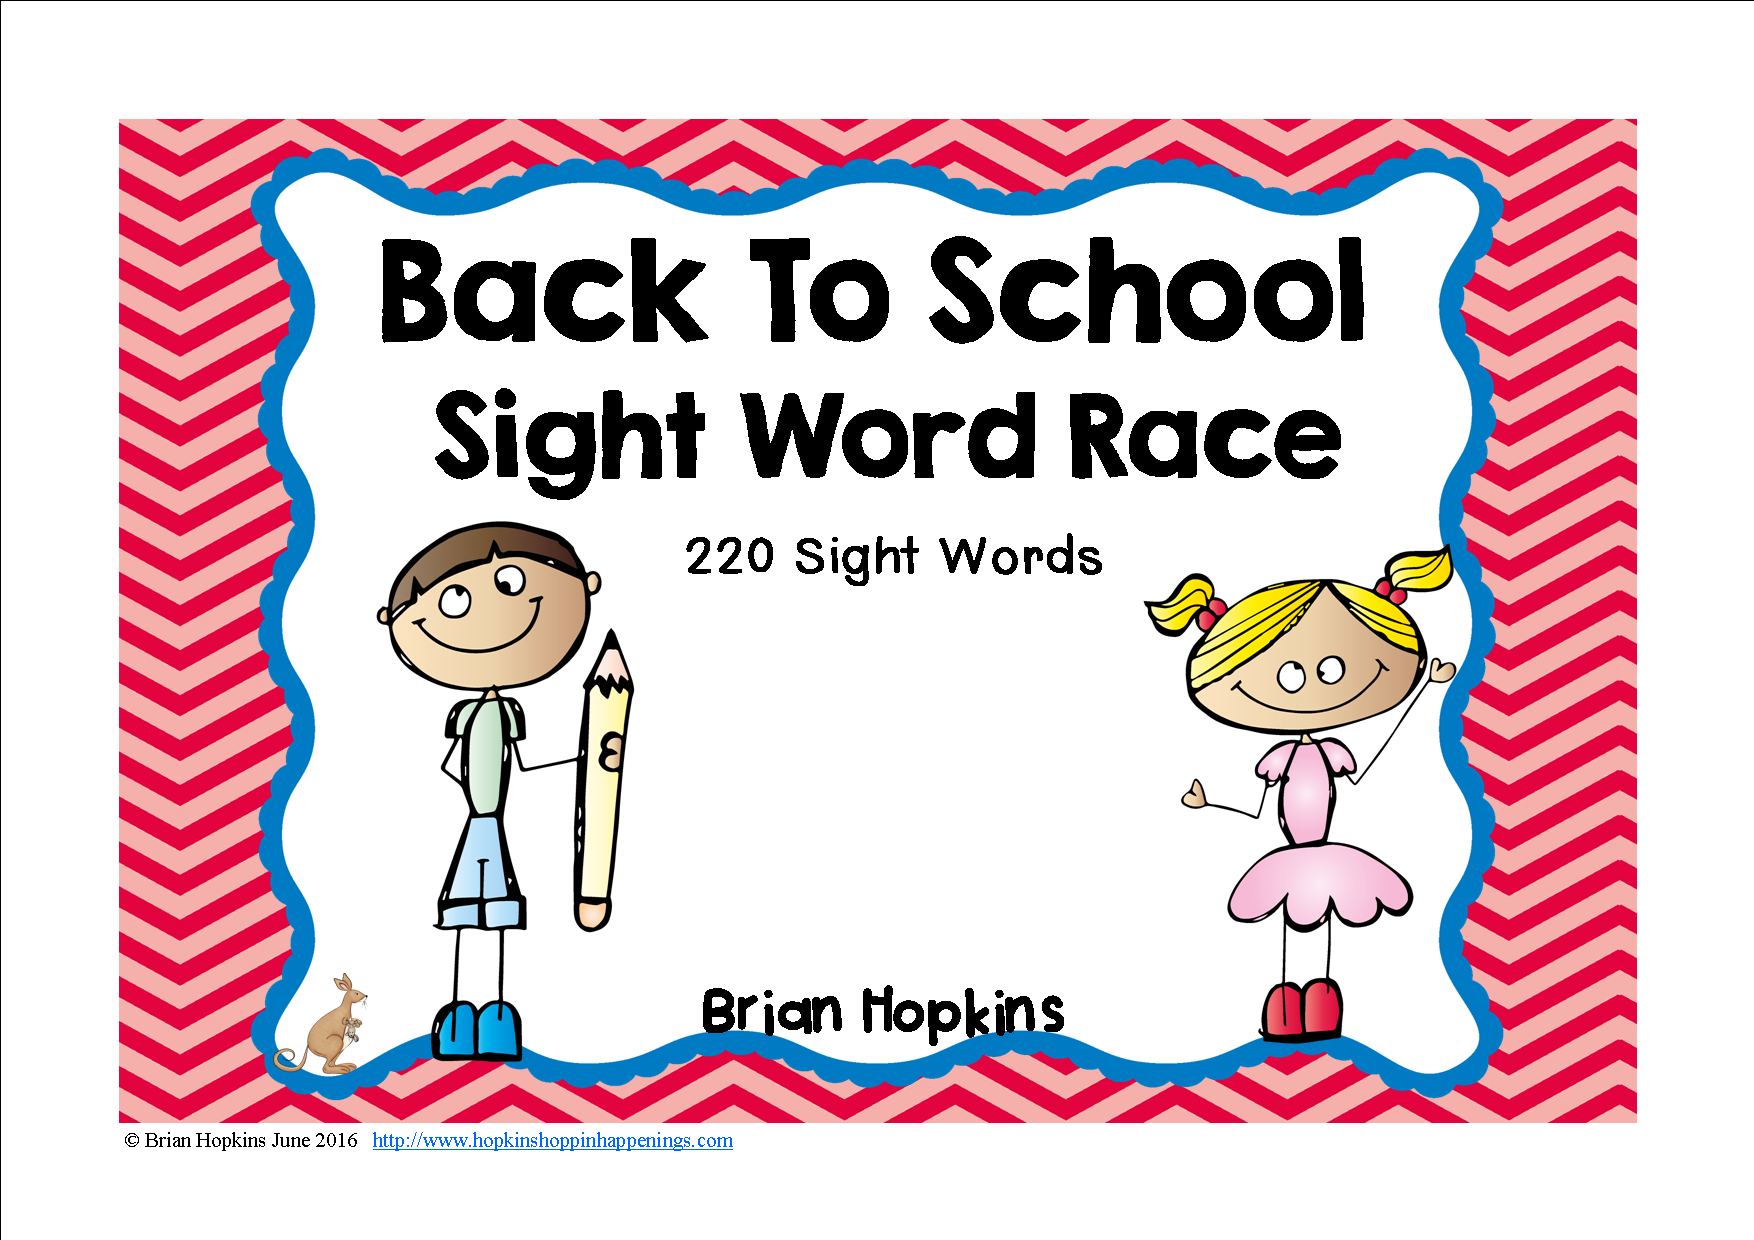 Back To School Sight Word Race Is A Board Game Where Your